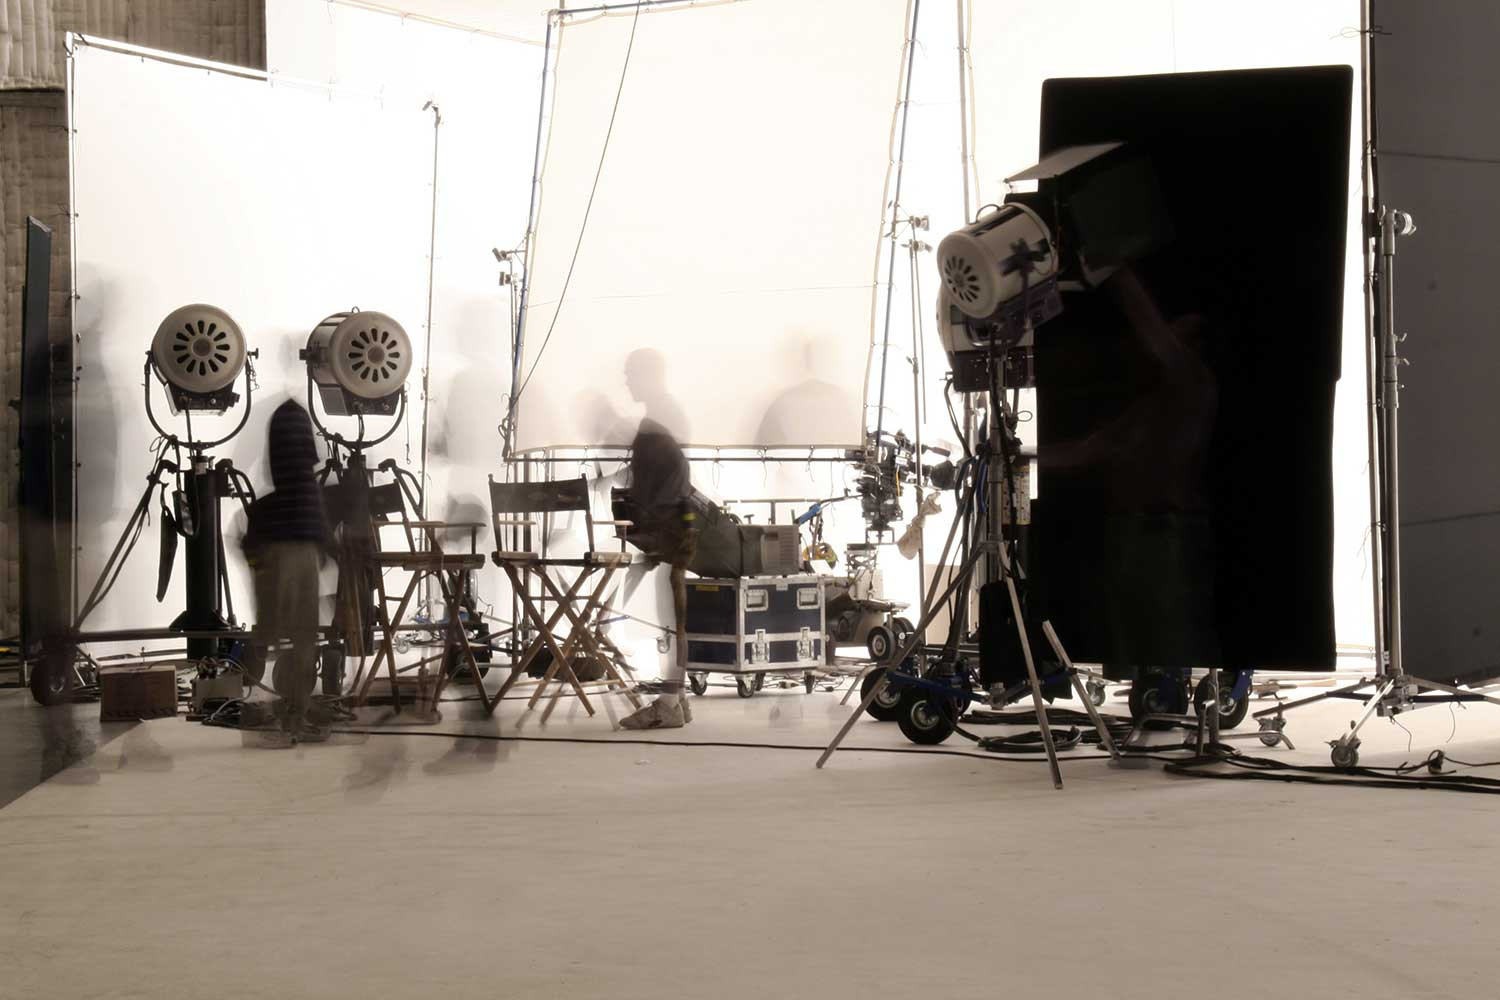 Image of people working on set. Lights can be seen.